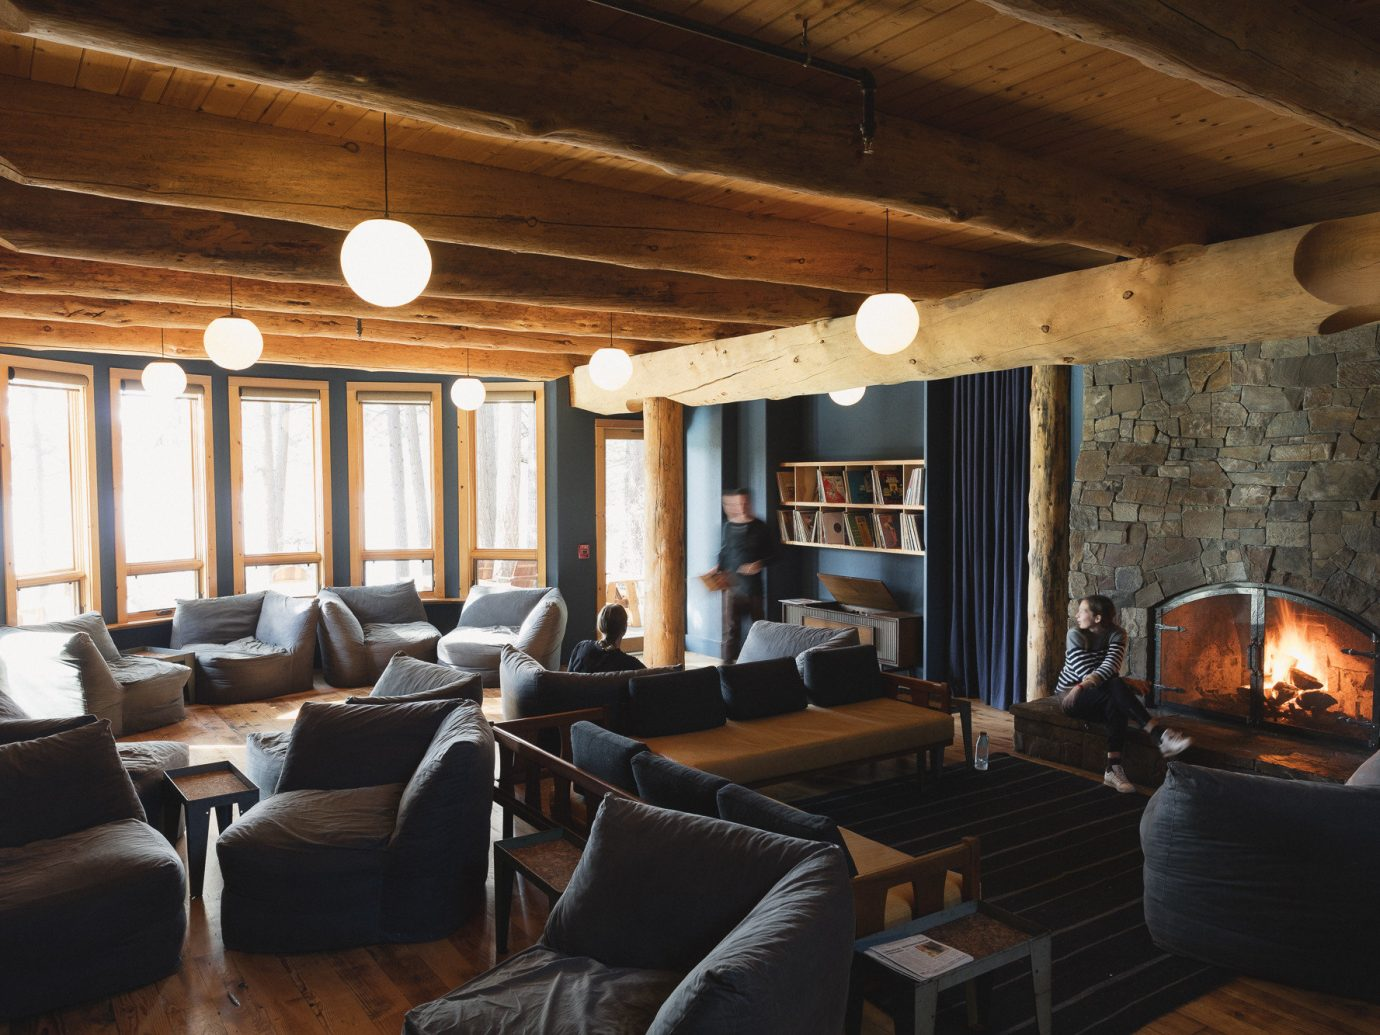 Boutique Hotels Fall Travel Hotels Outdoors + Adventure indoor Living ceiling room floor sofa Fireplace property window fire living room furniture estate cottage home interior design log cabin wood real estate farmhouse Villa area several